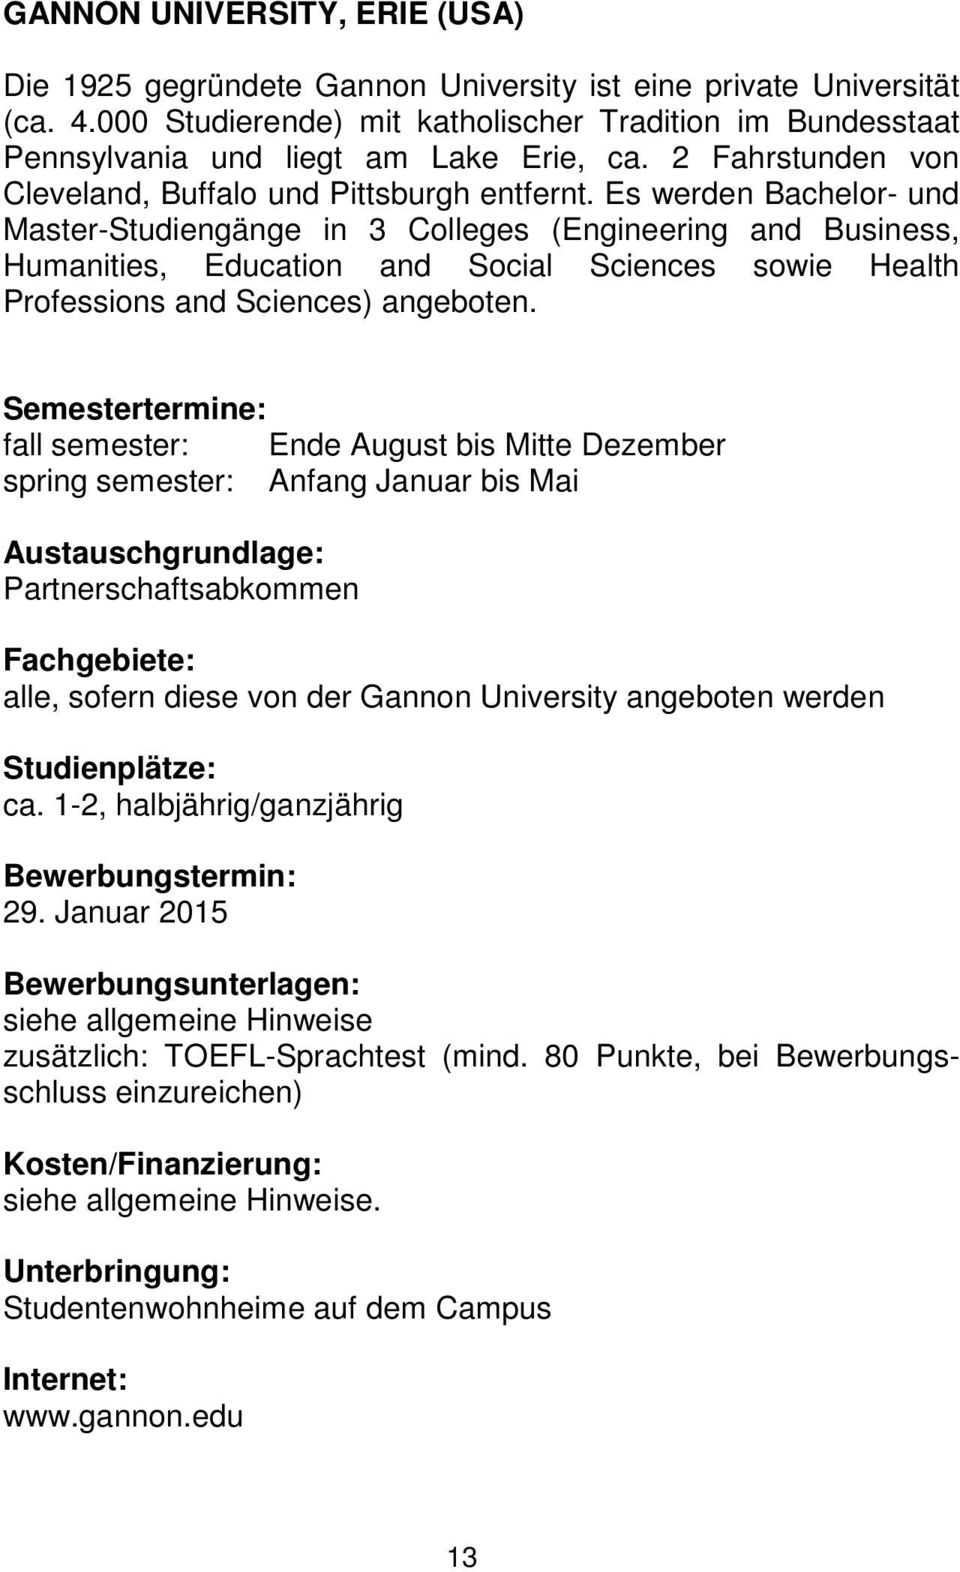 Es werden Bachelor- und Master-Studiengänge in 3 Colleges (Engineering and Business, Humanities, Education and Social Sciences sowie Health Professions and Sciences) angeboten.